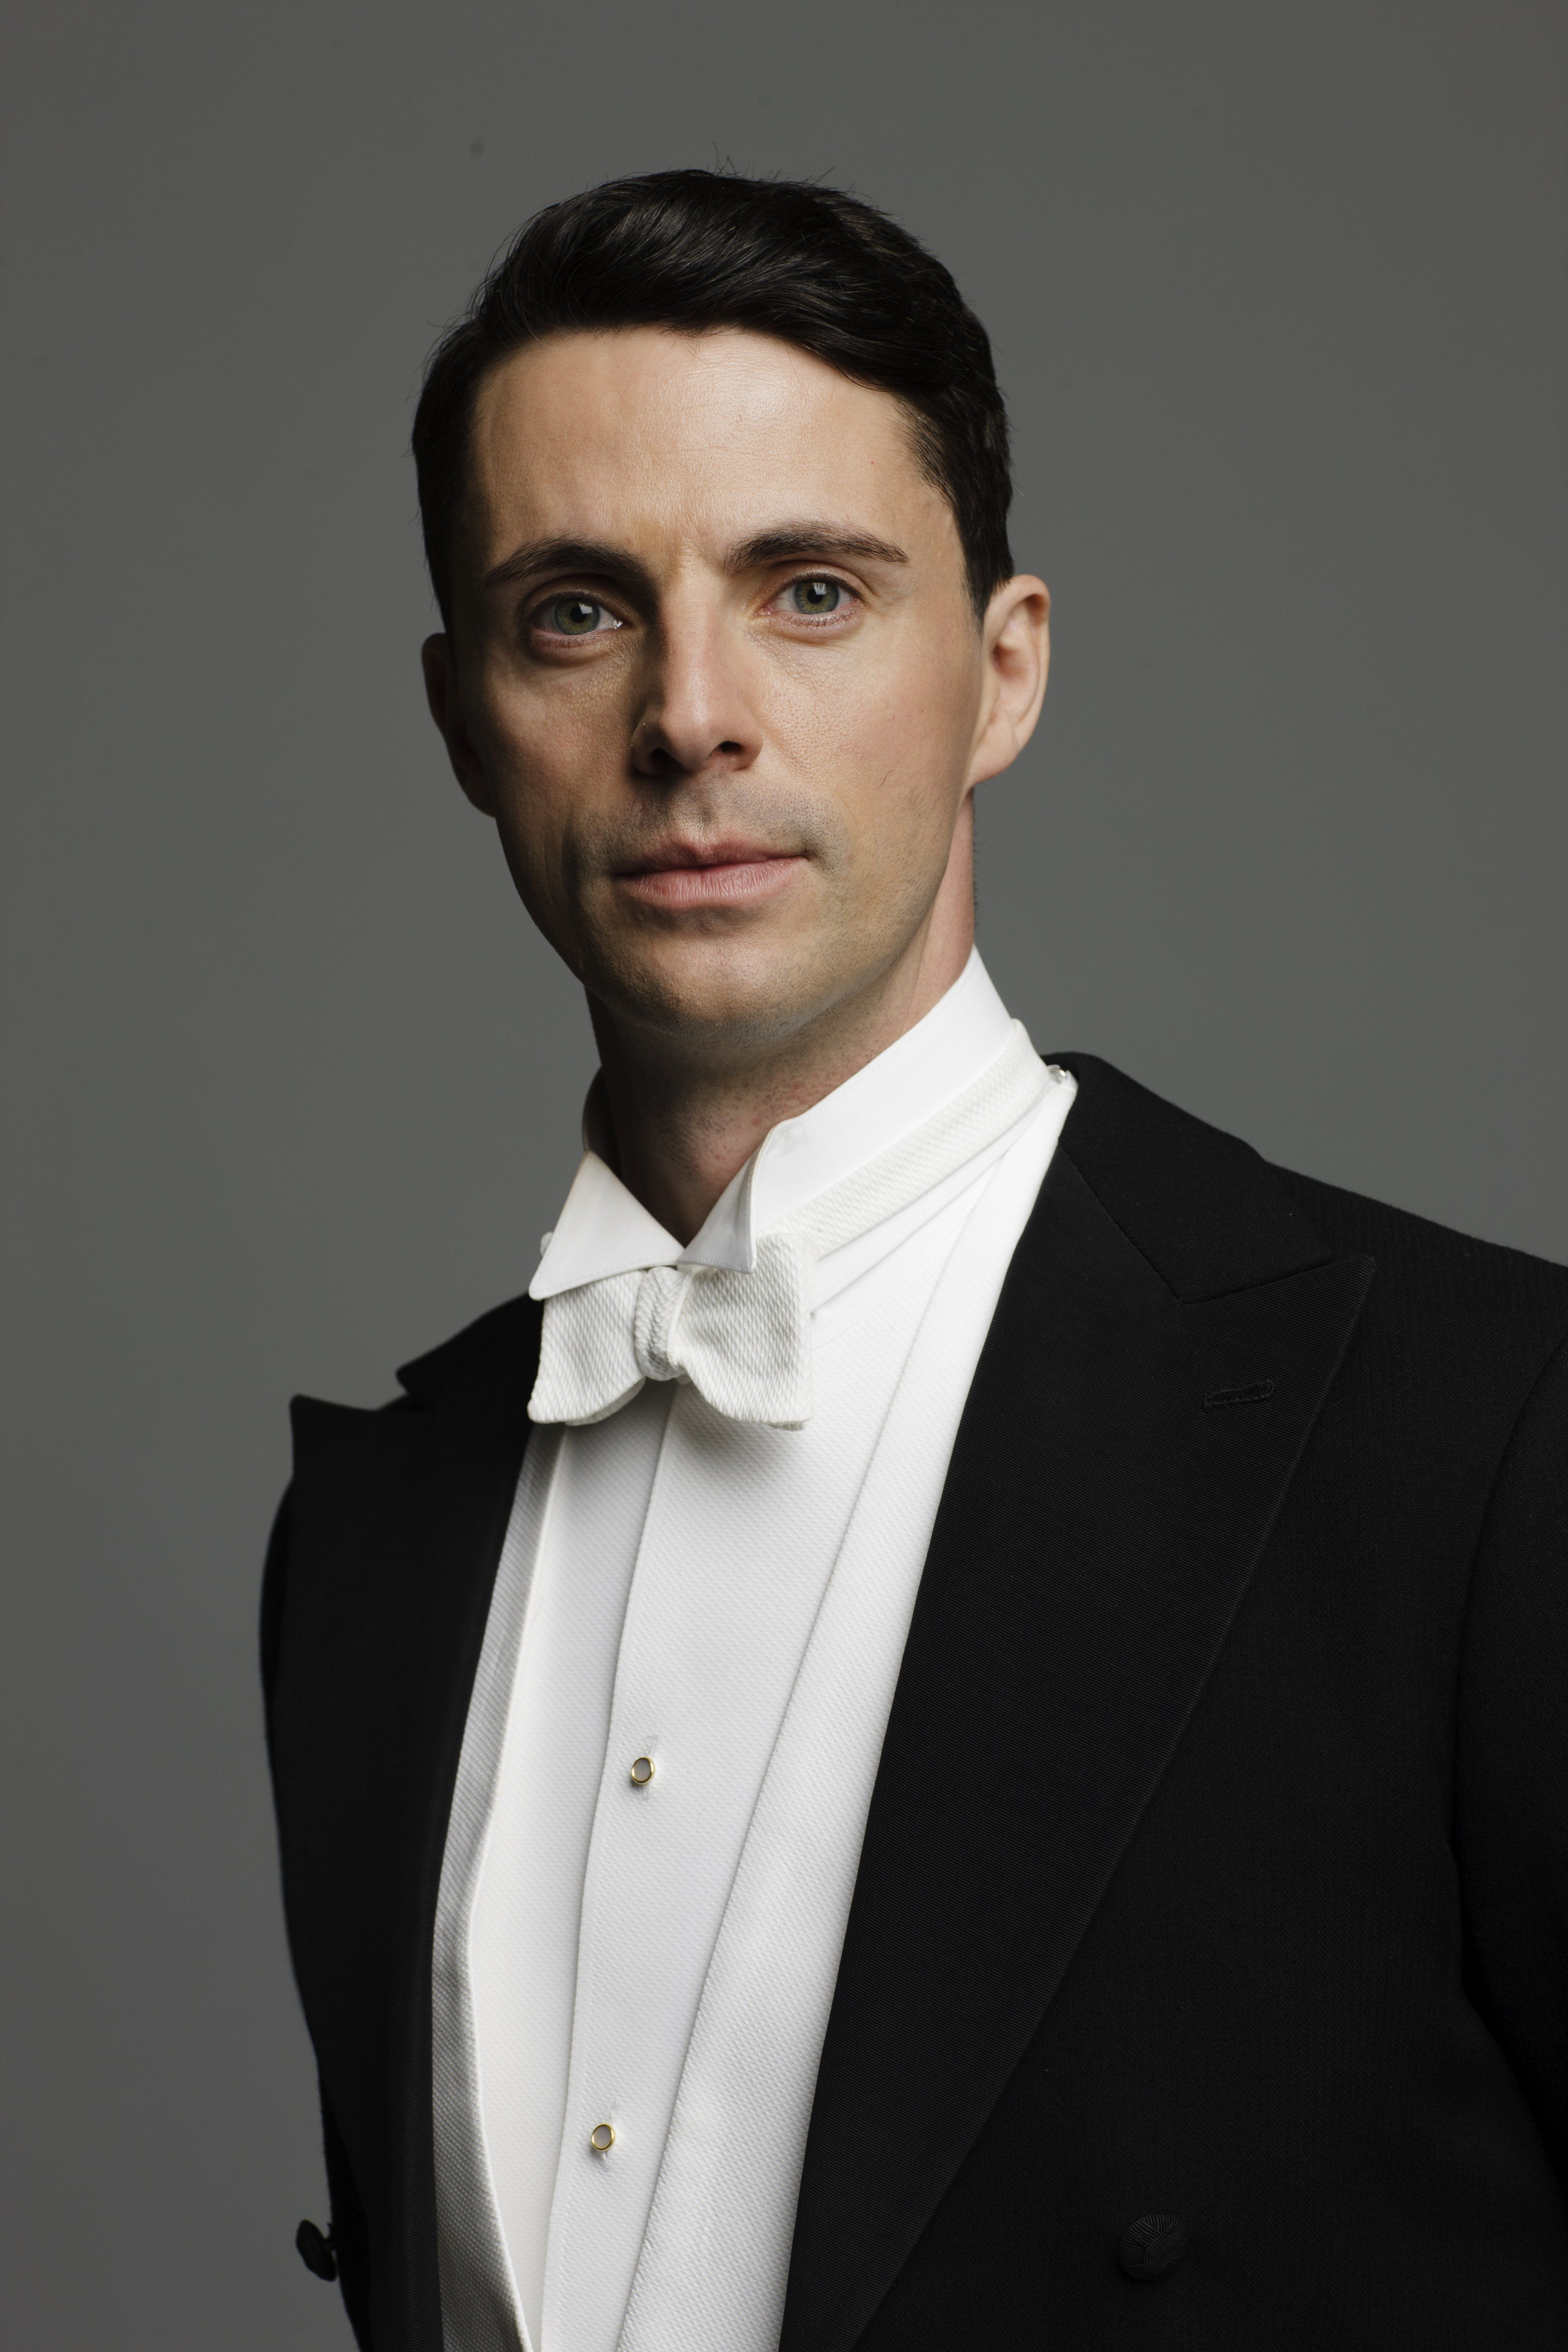 braless Matthew Goode (born 1978) naked photo 2017